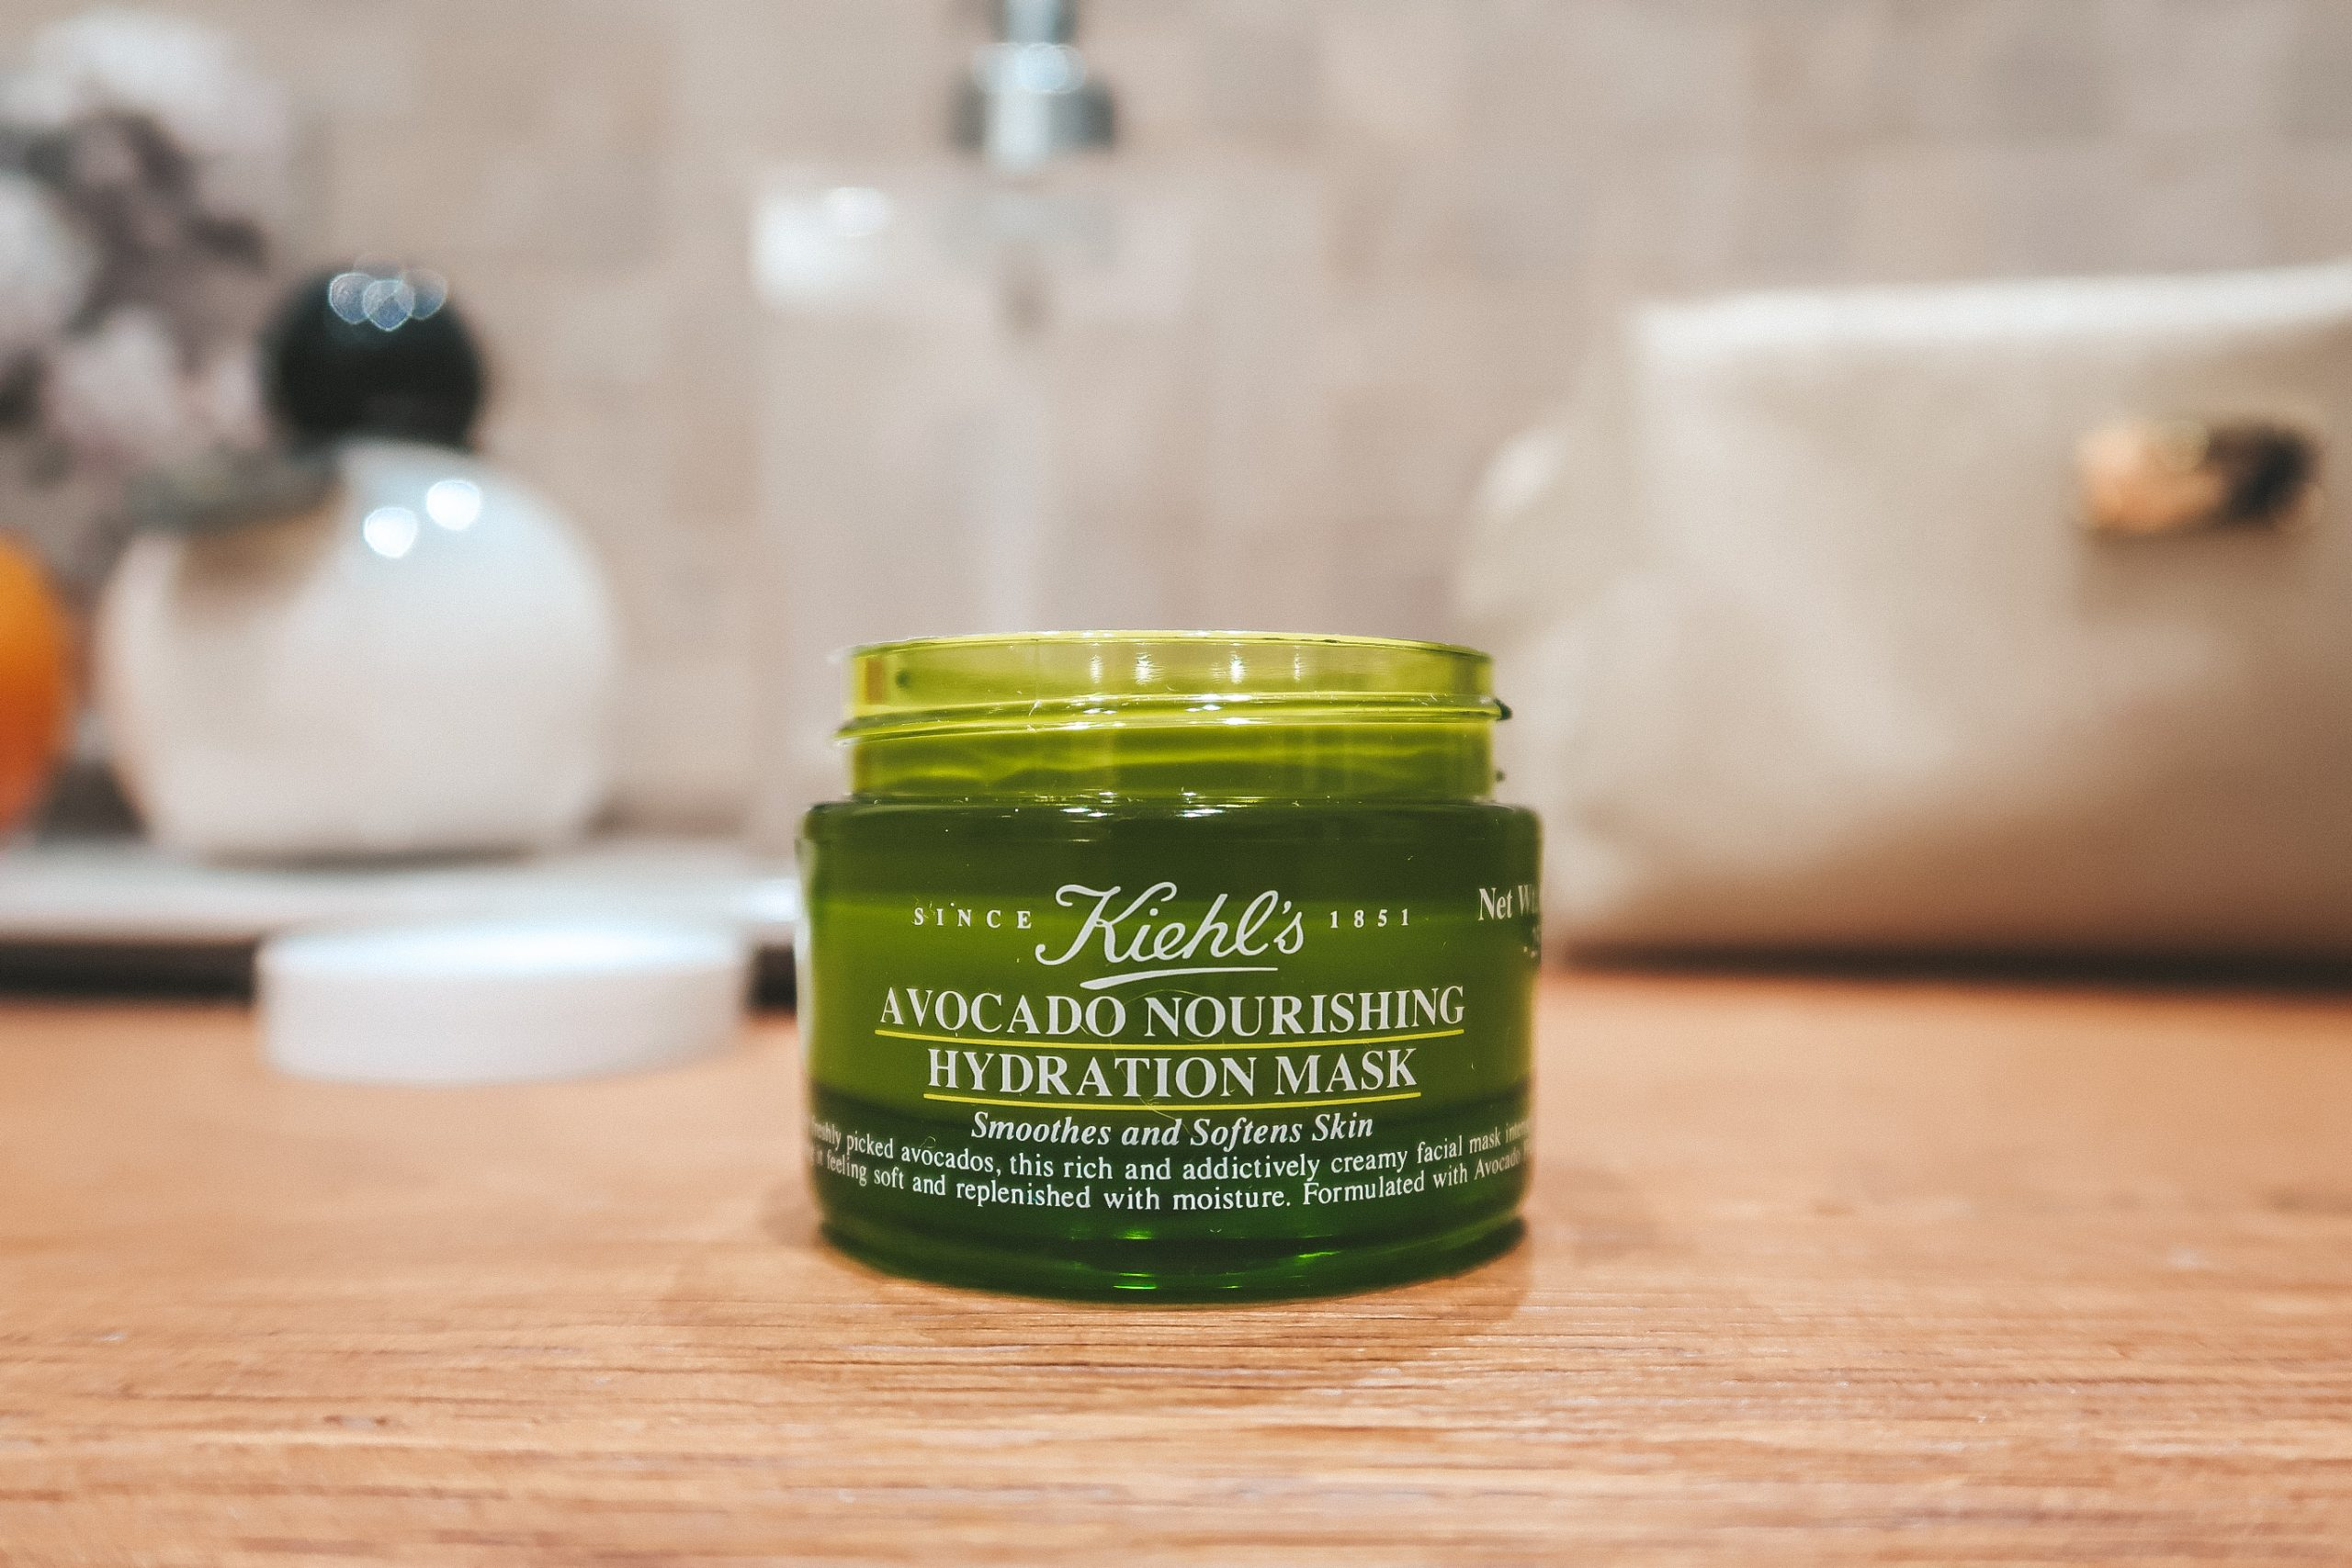 Avocado Nourishing Hydration Mask di Kiehl's